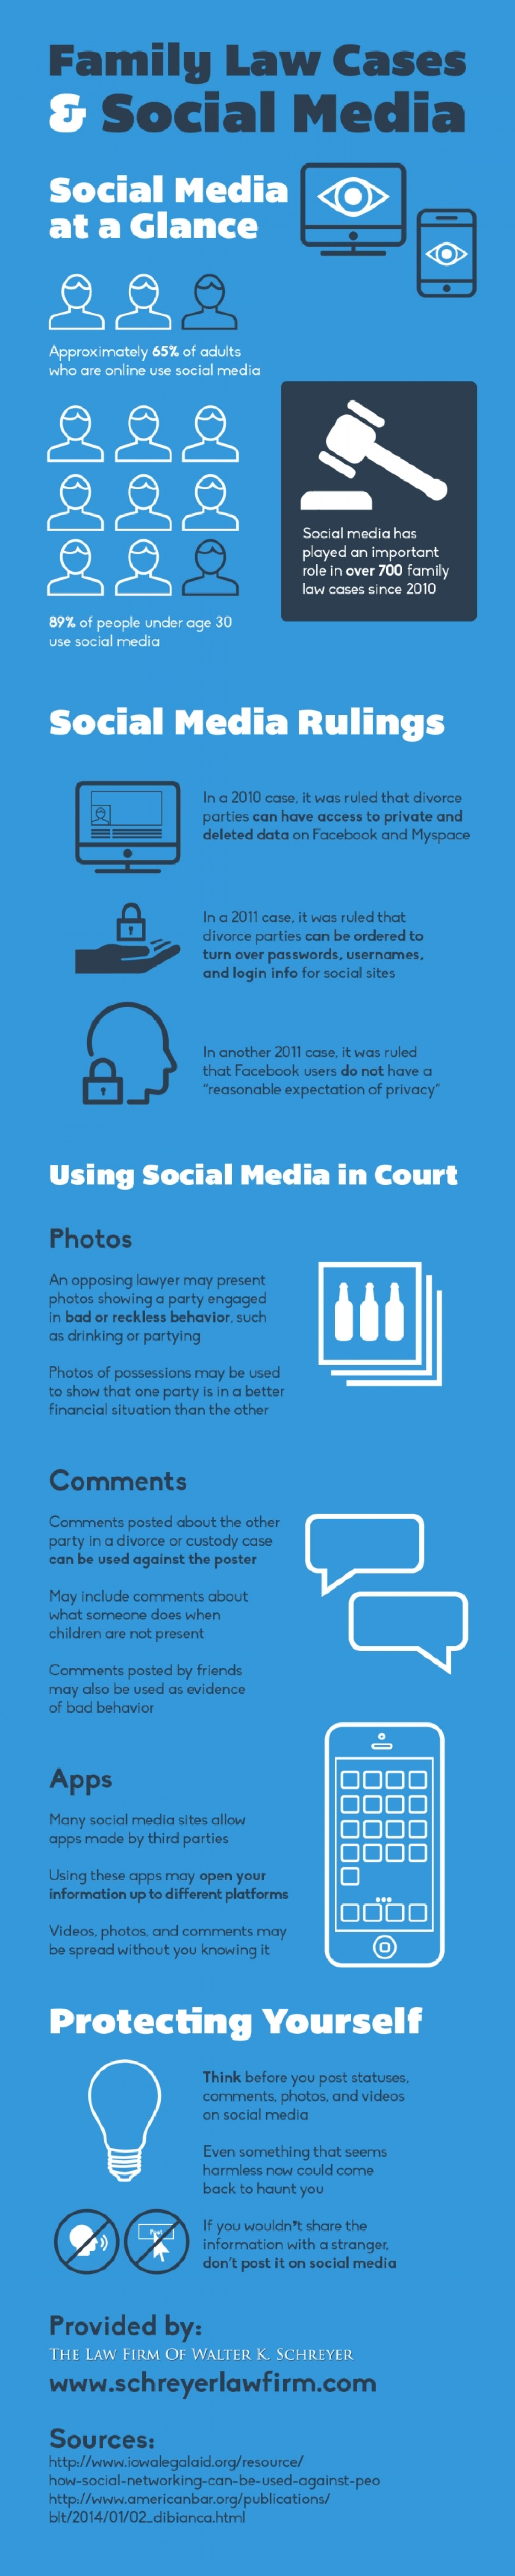 Family Law Cases and Social Media  Infographic